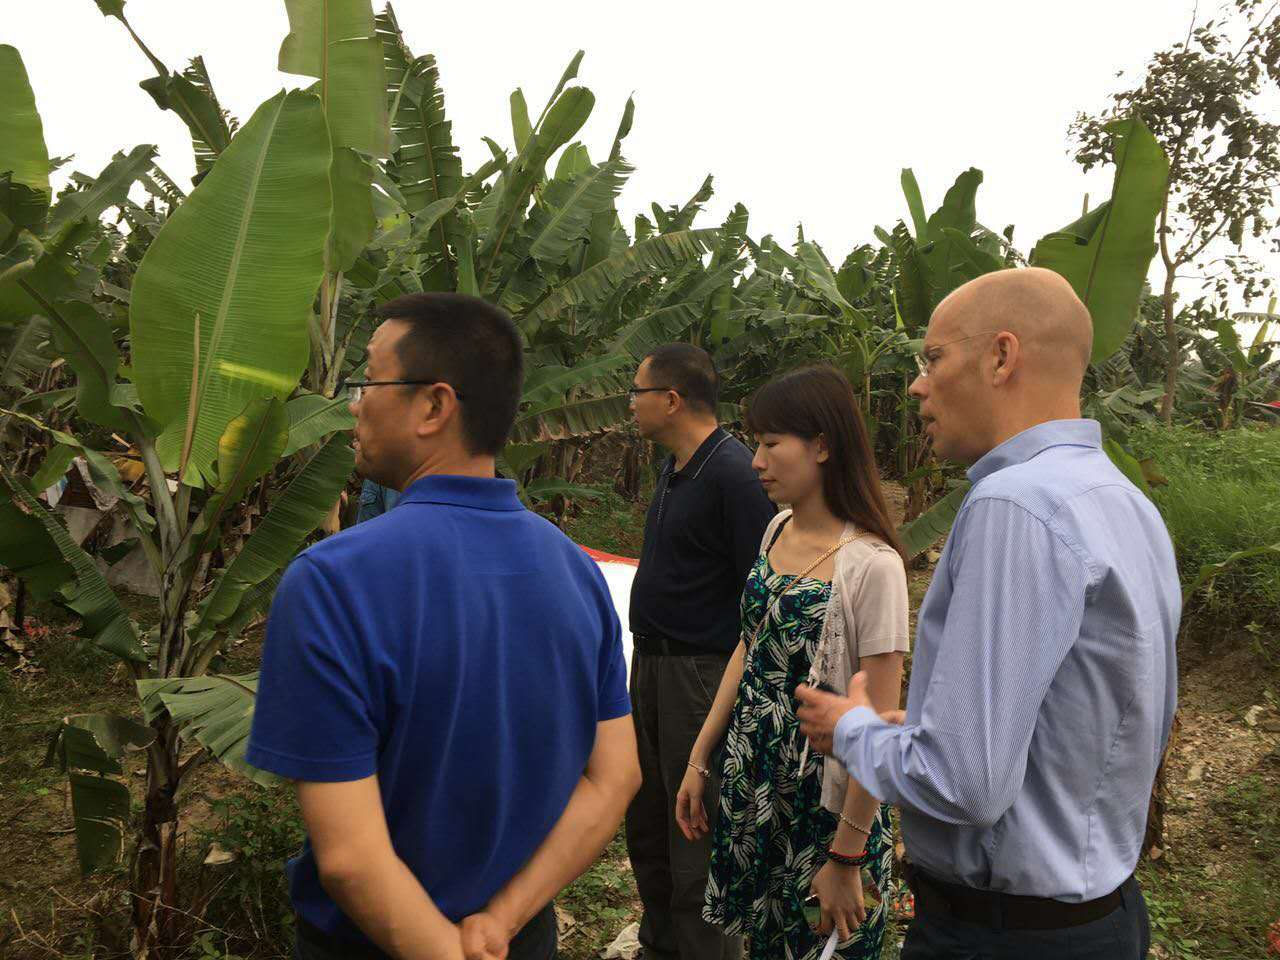 Our visit to China (images) – April 2016